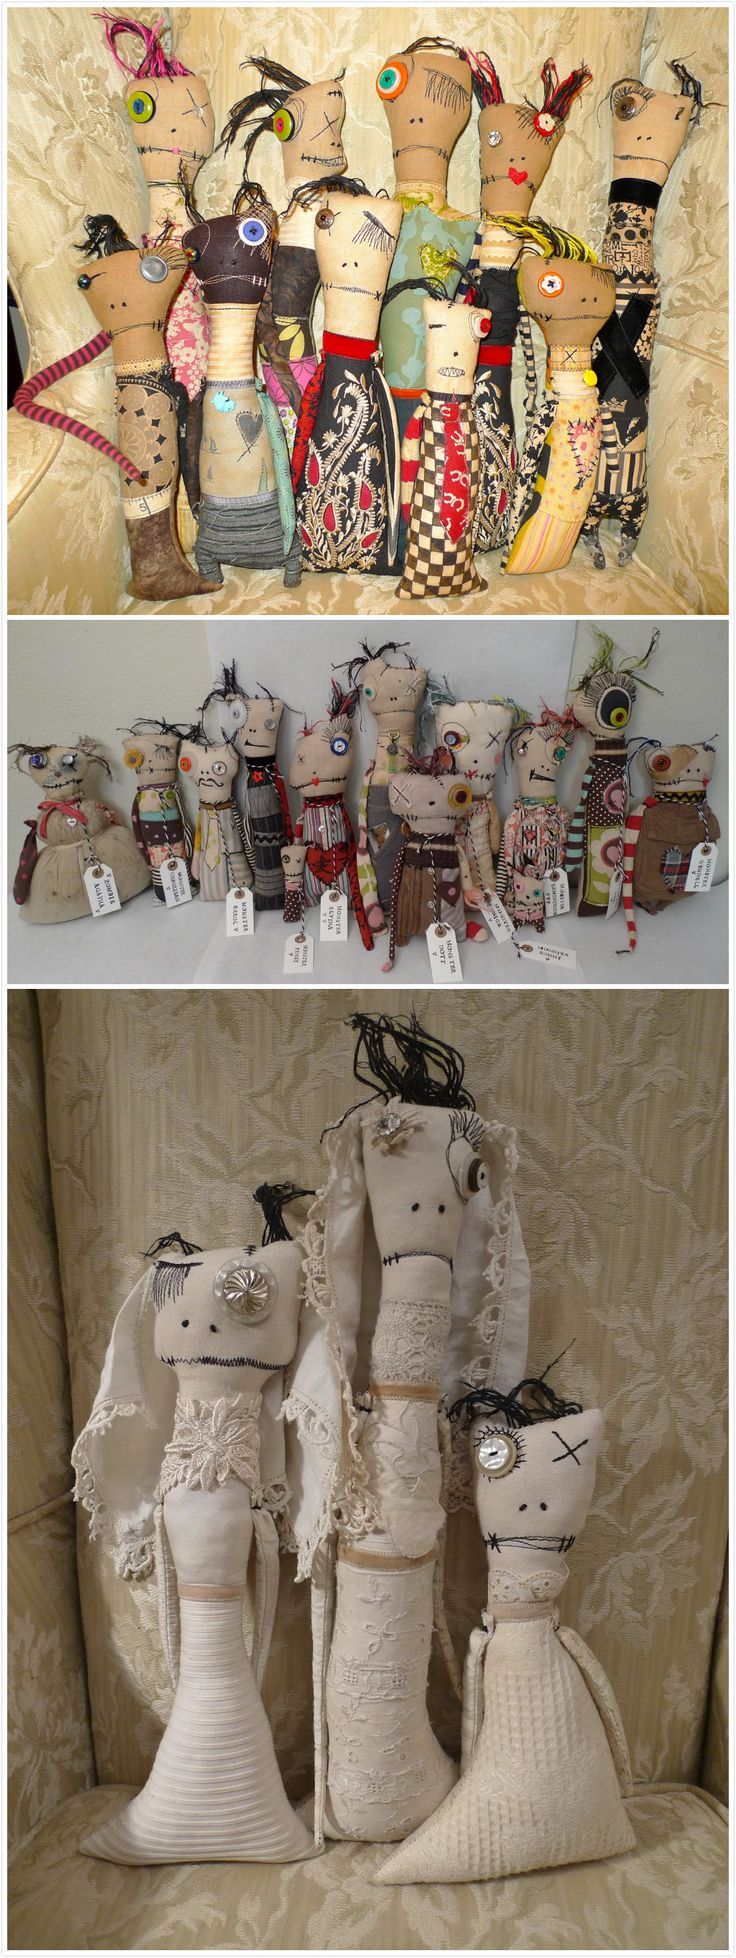 Monster Rag Doll & Little Creepers by twisted root studio